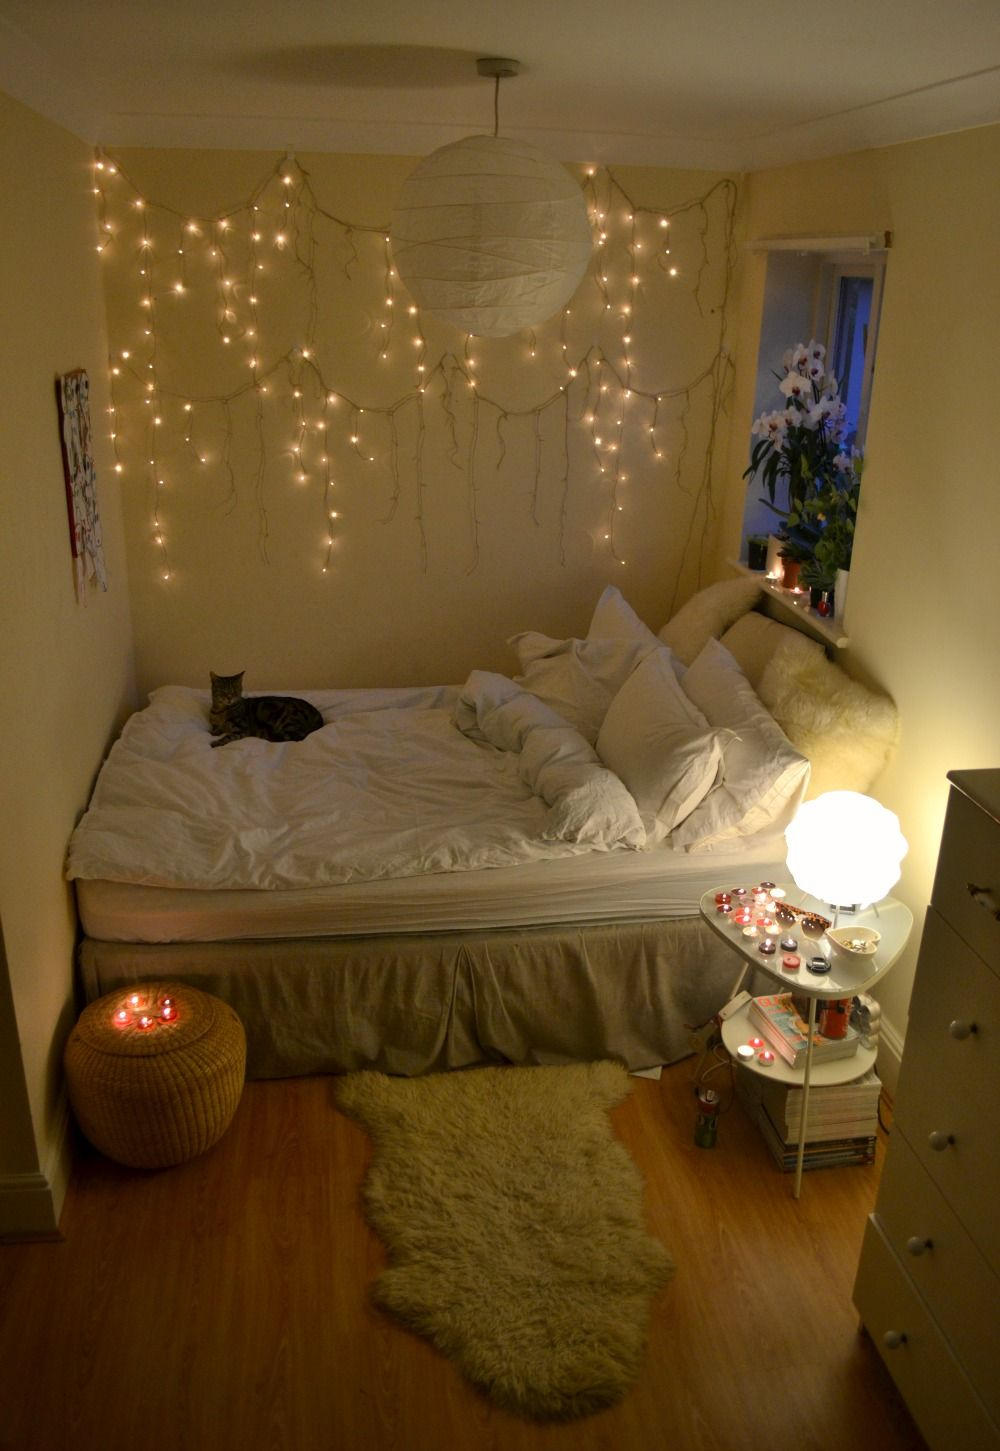 i love how cozy this looks. i'd never leave this place | for the